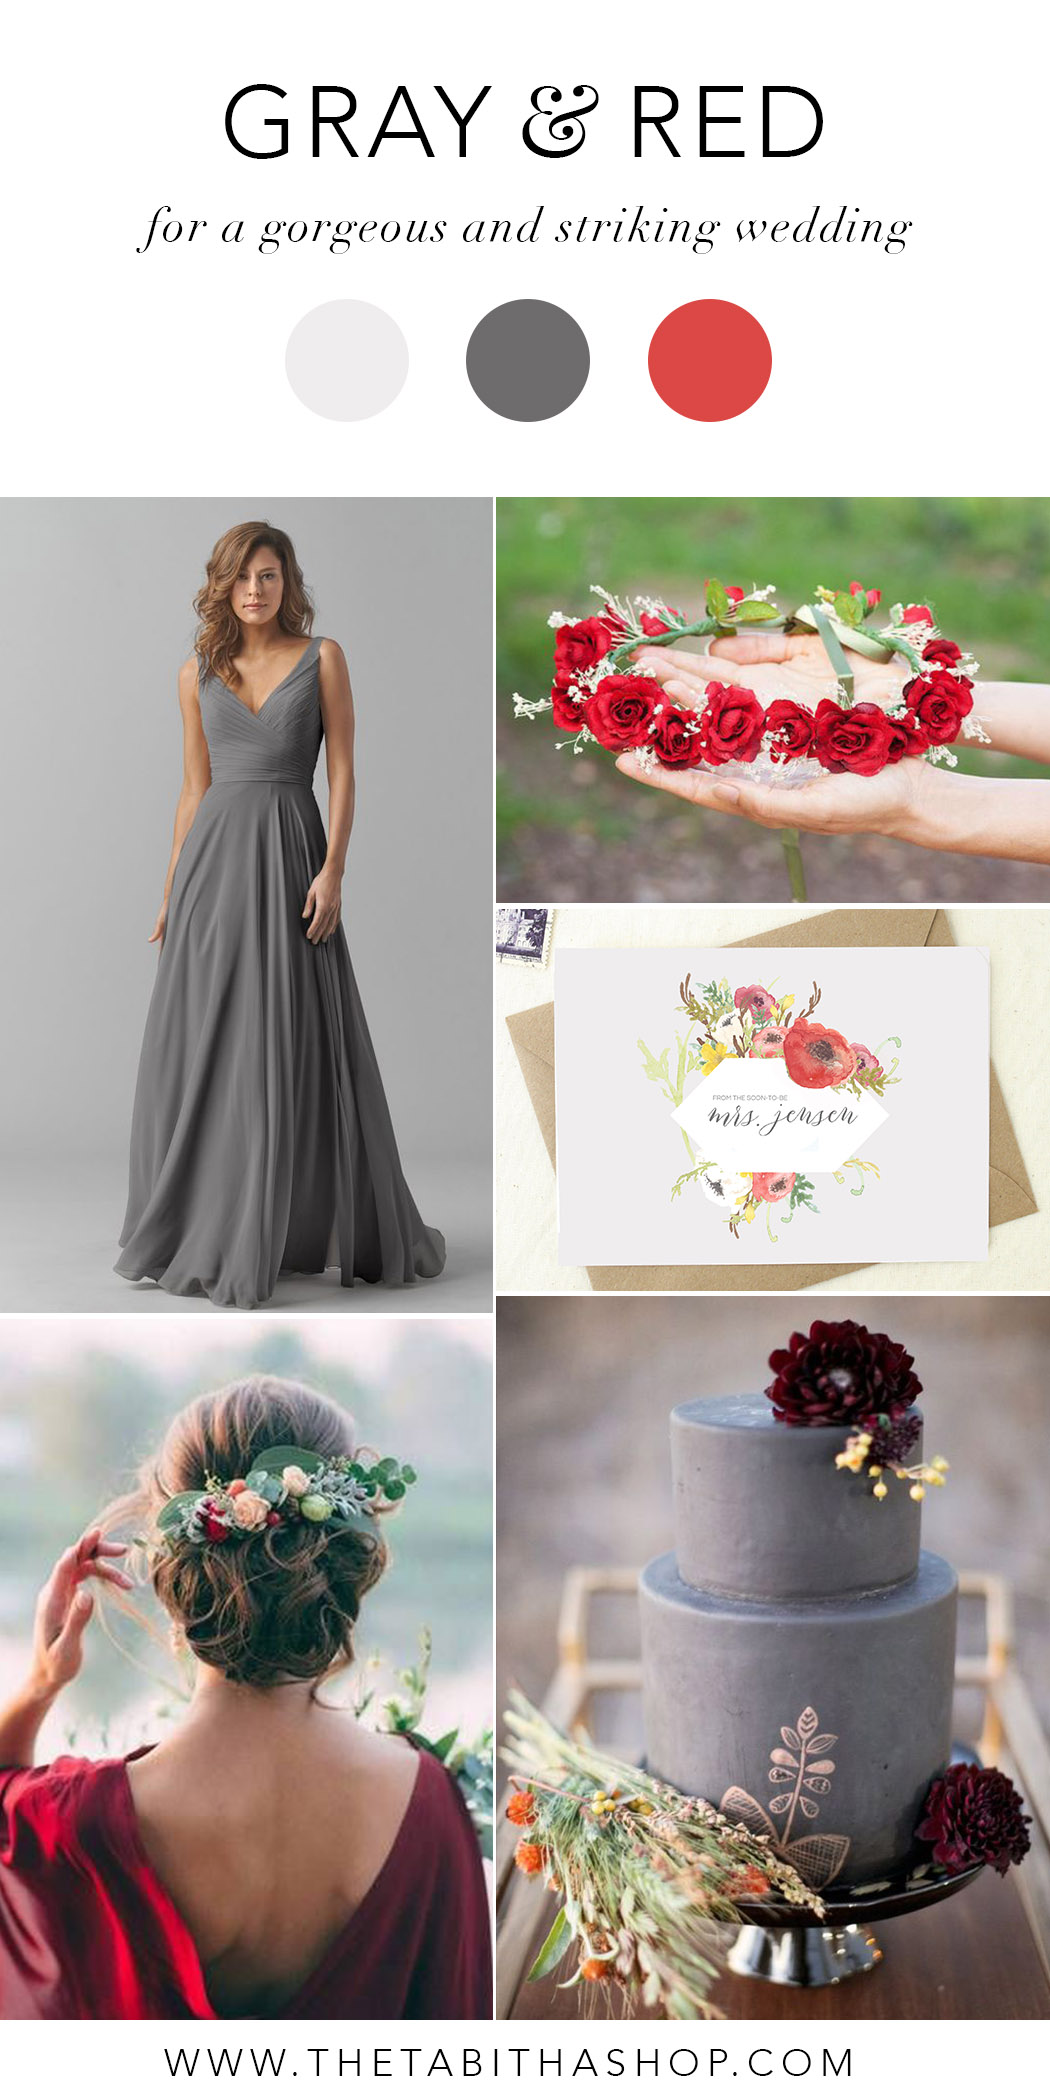 Clockwise, starting top left:  Bridesmaid Dress by Watters  // Crown by  Ritaflowersbcn  //  Future Mrs Card  by  The Tabitha Shop  // gray cake via  Deer Pearl Flowers  // Photo by Green Wedding Shoes via  Domino